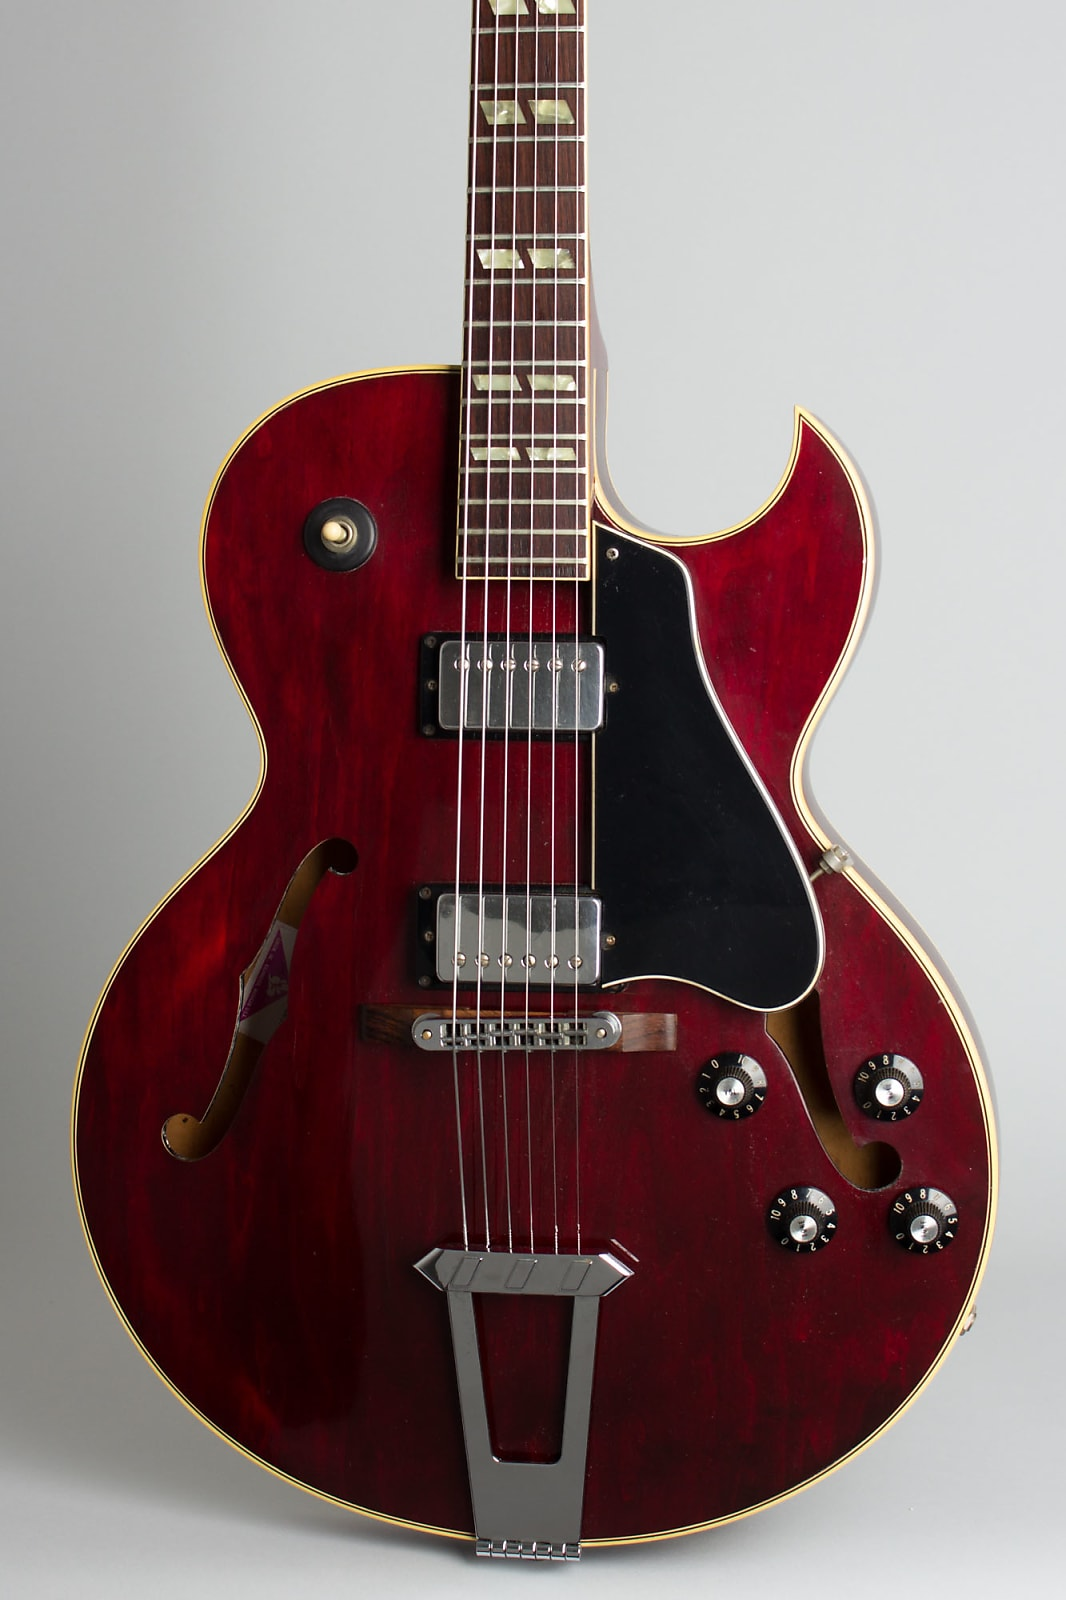 Gibson  ES-175T Arch Top Hollow Body Electric Guitar (1978), ser. #70518136, original black tolex hard shell case.